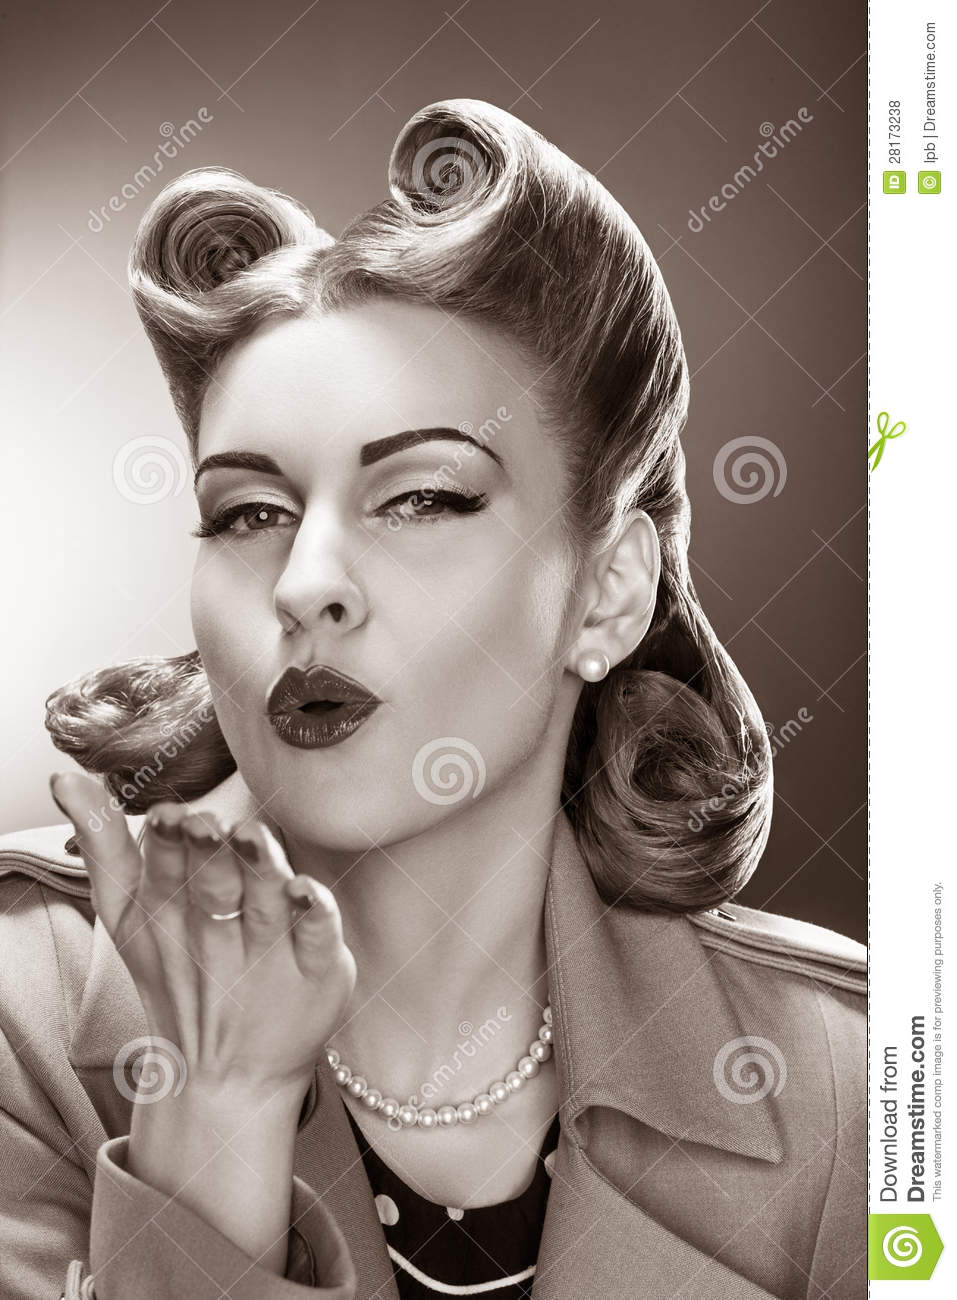 Old Fashioned Pin Up Girl Blowing A Kiss Retro Style